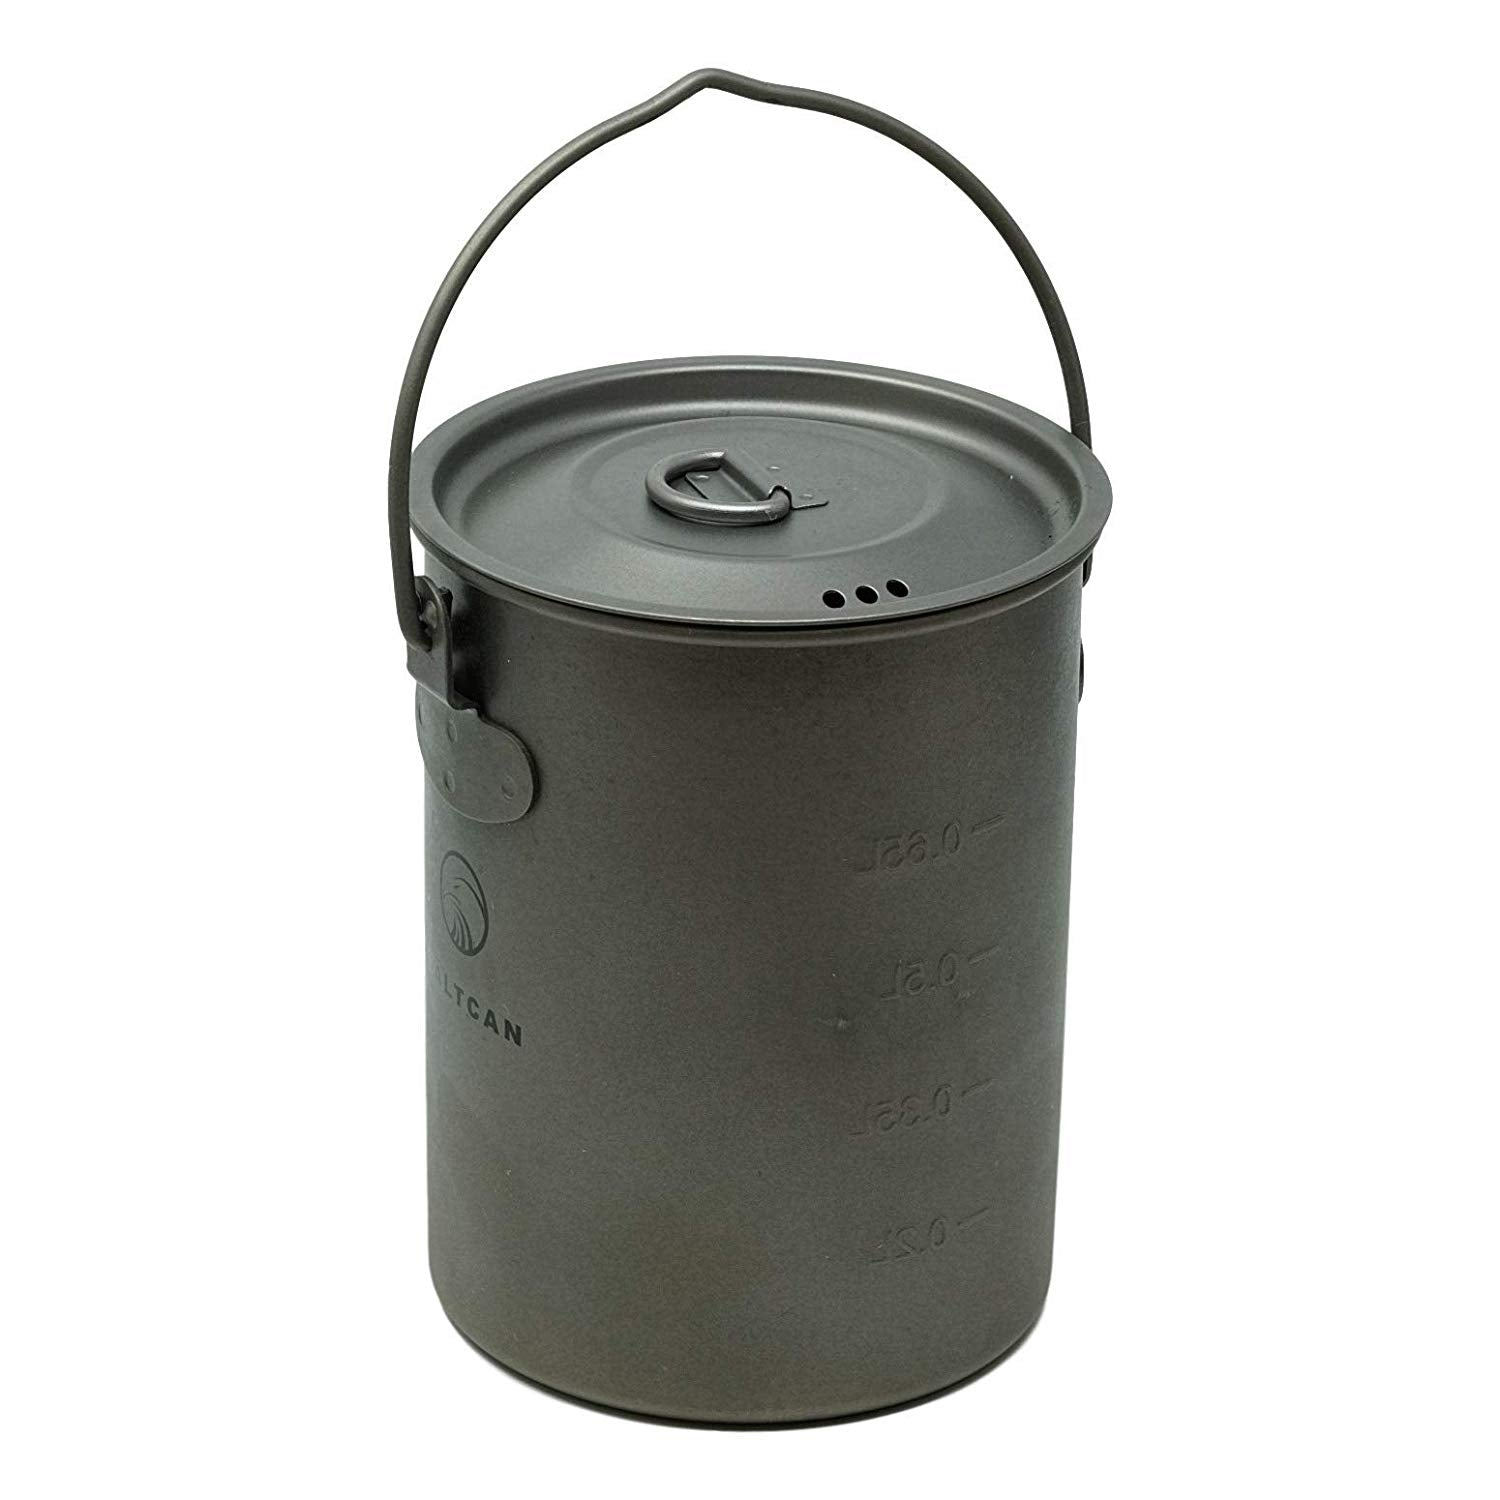 Valtcan 900ml Titanium Pot 34 fl oz with Lid and Stuff Sack